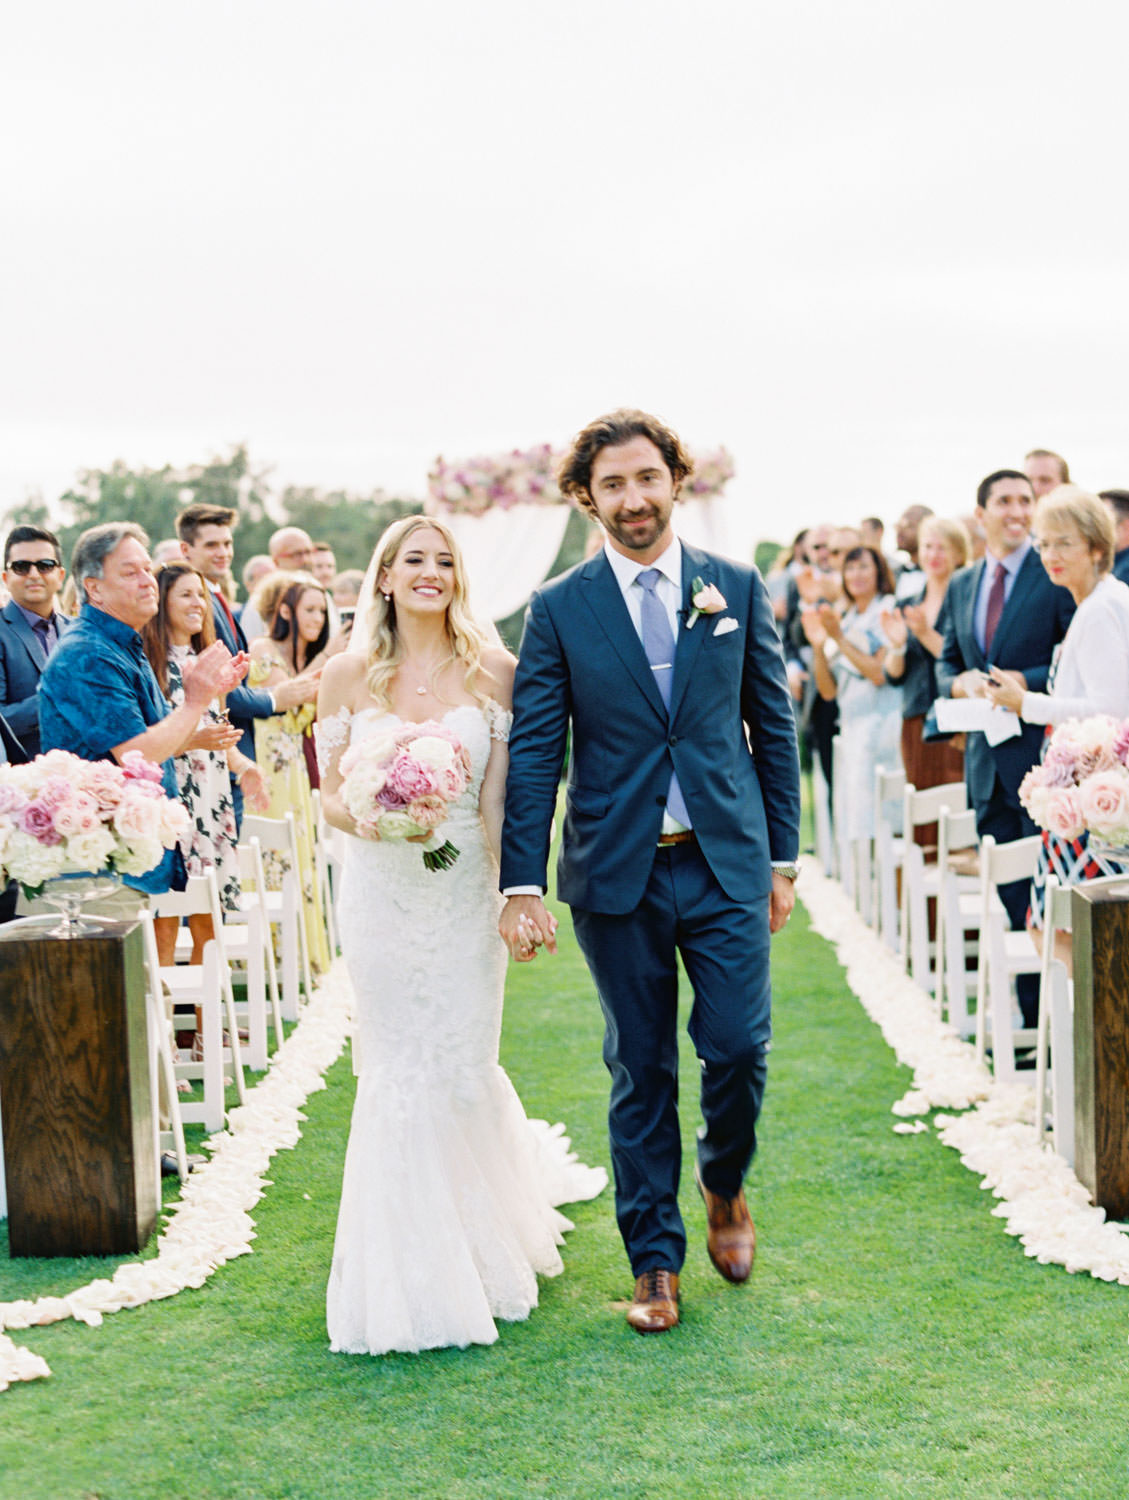 Couple walking down the aisle after the ceremony, Ceremony on grassy lawn with white chairs, aisle arrangements with ivory, pink, and lavender arrangements, ceremony white draping with large arrangement of roses on top of the arch, Lodge at Torrey Pines wedding, film photography by Cavin Elizabeth Photography